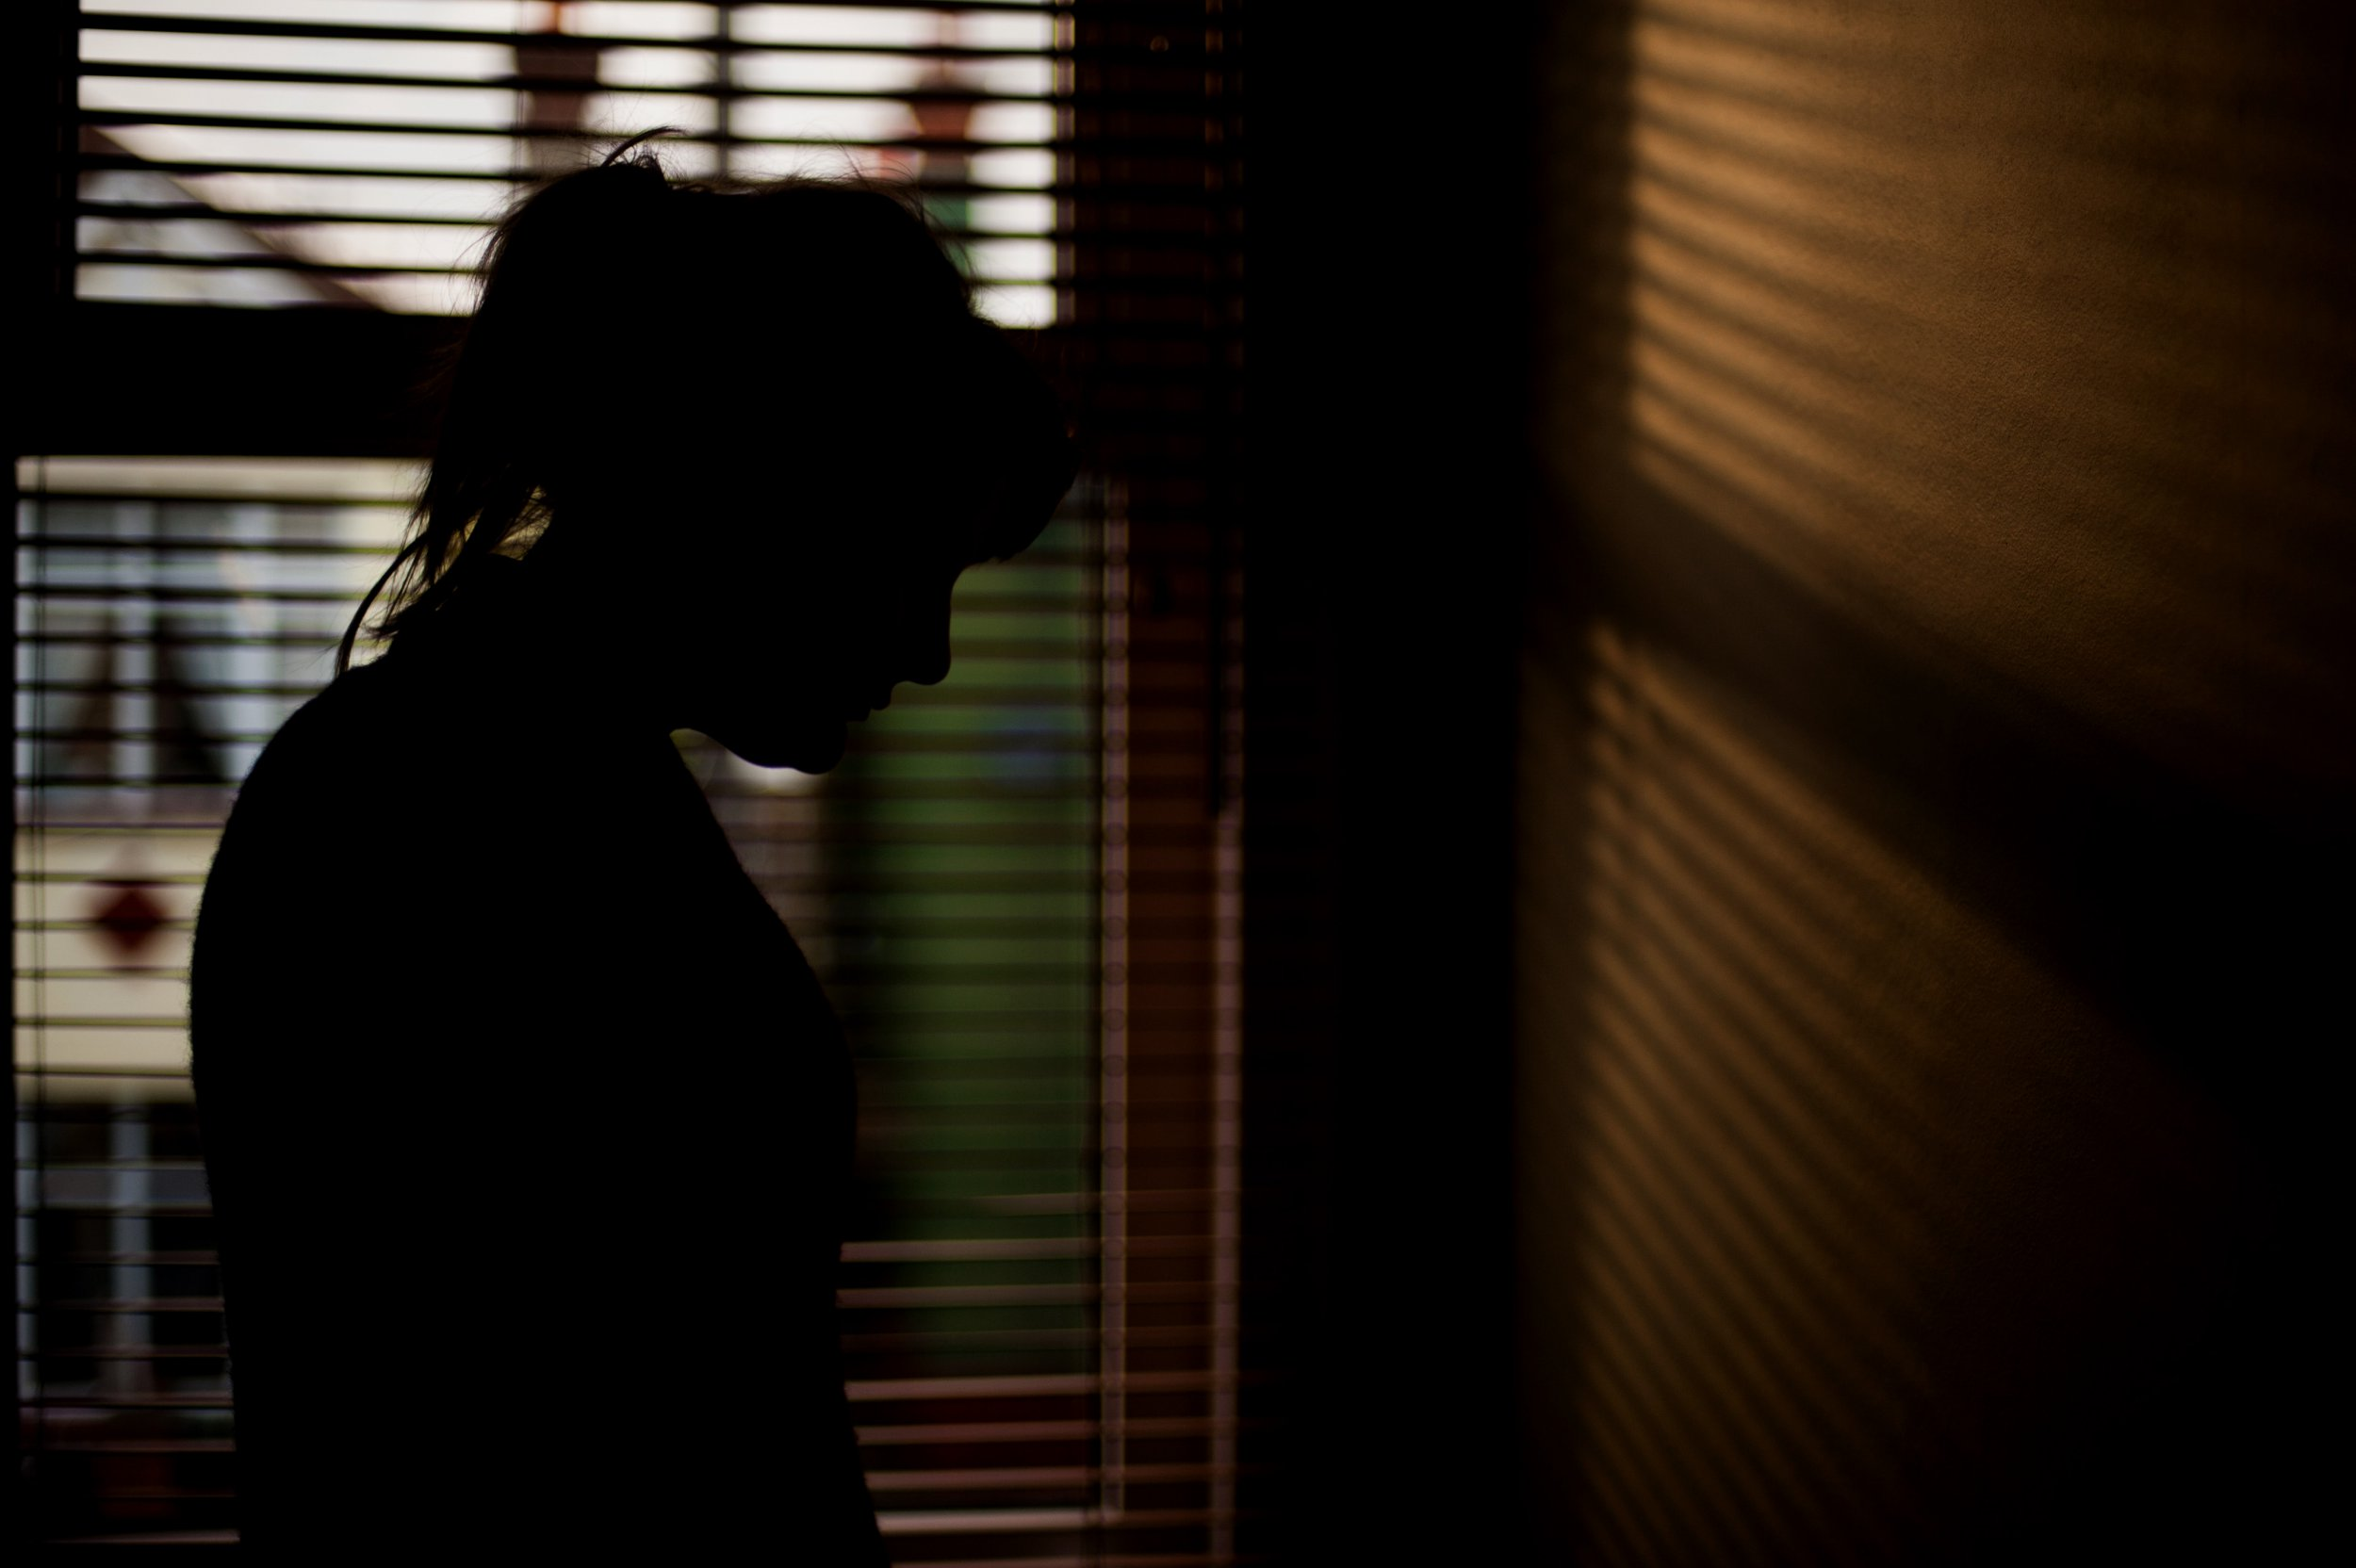 The silhouette of a woman standing by a window